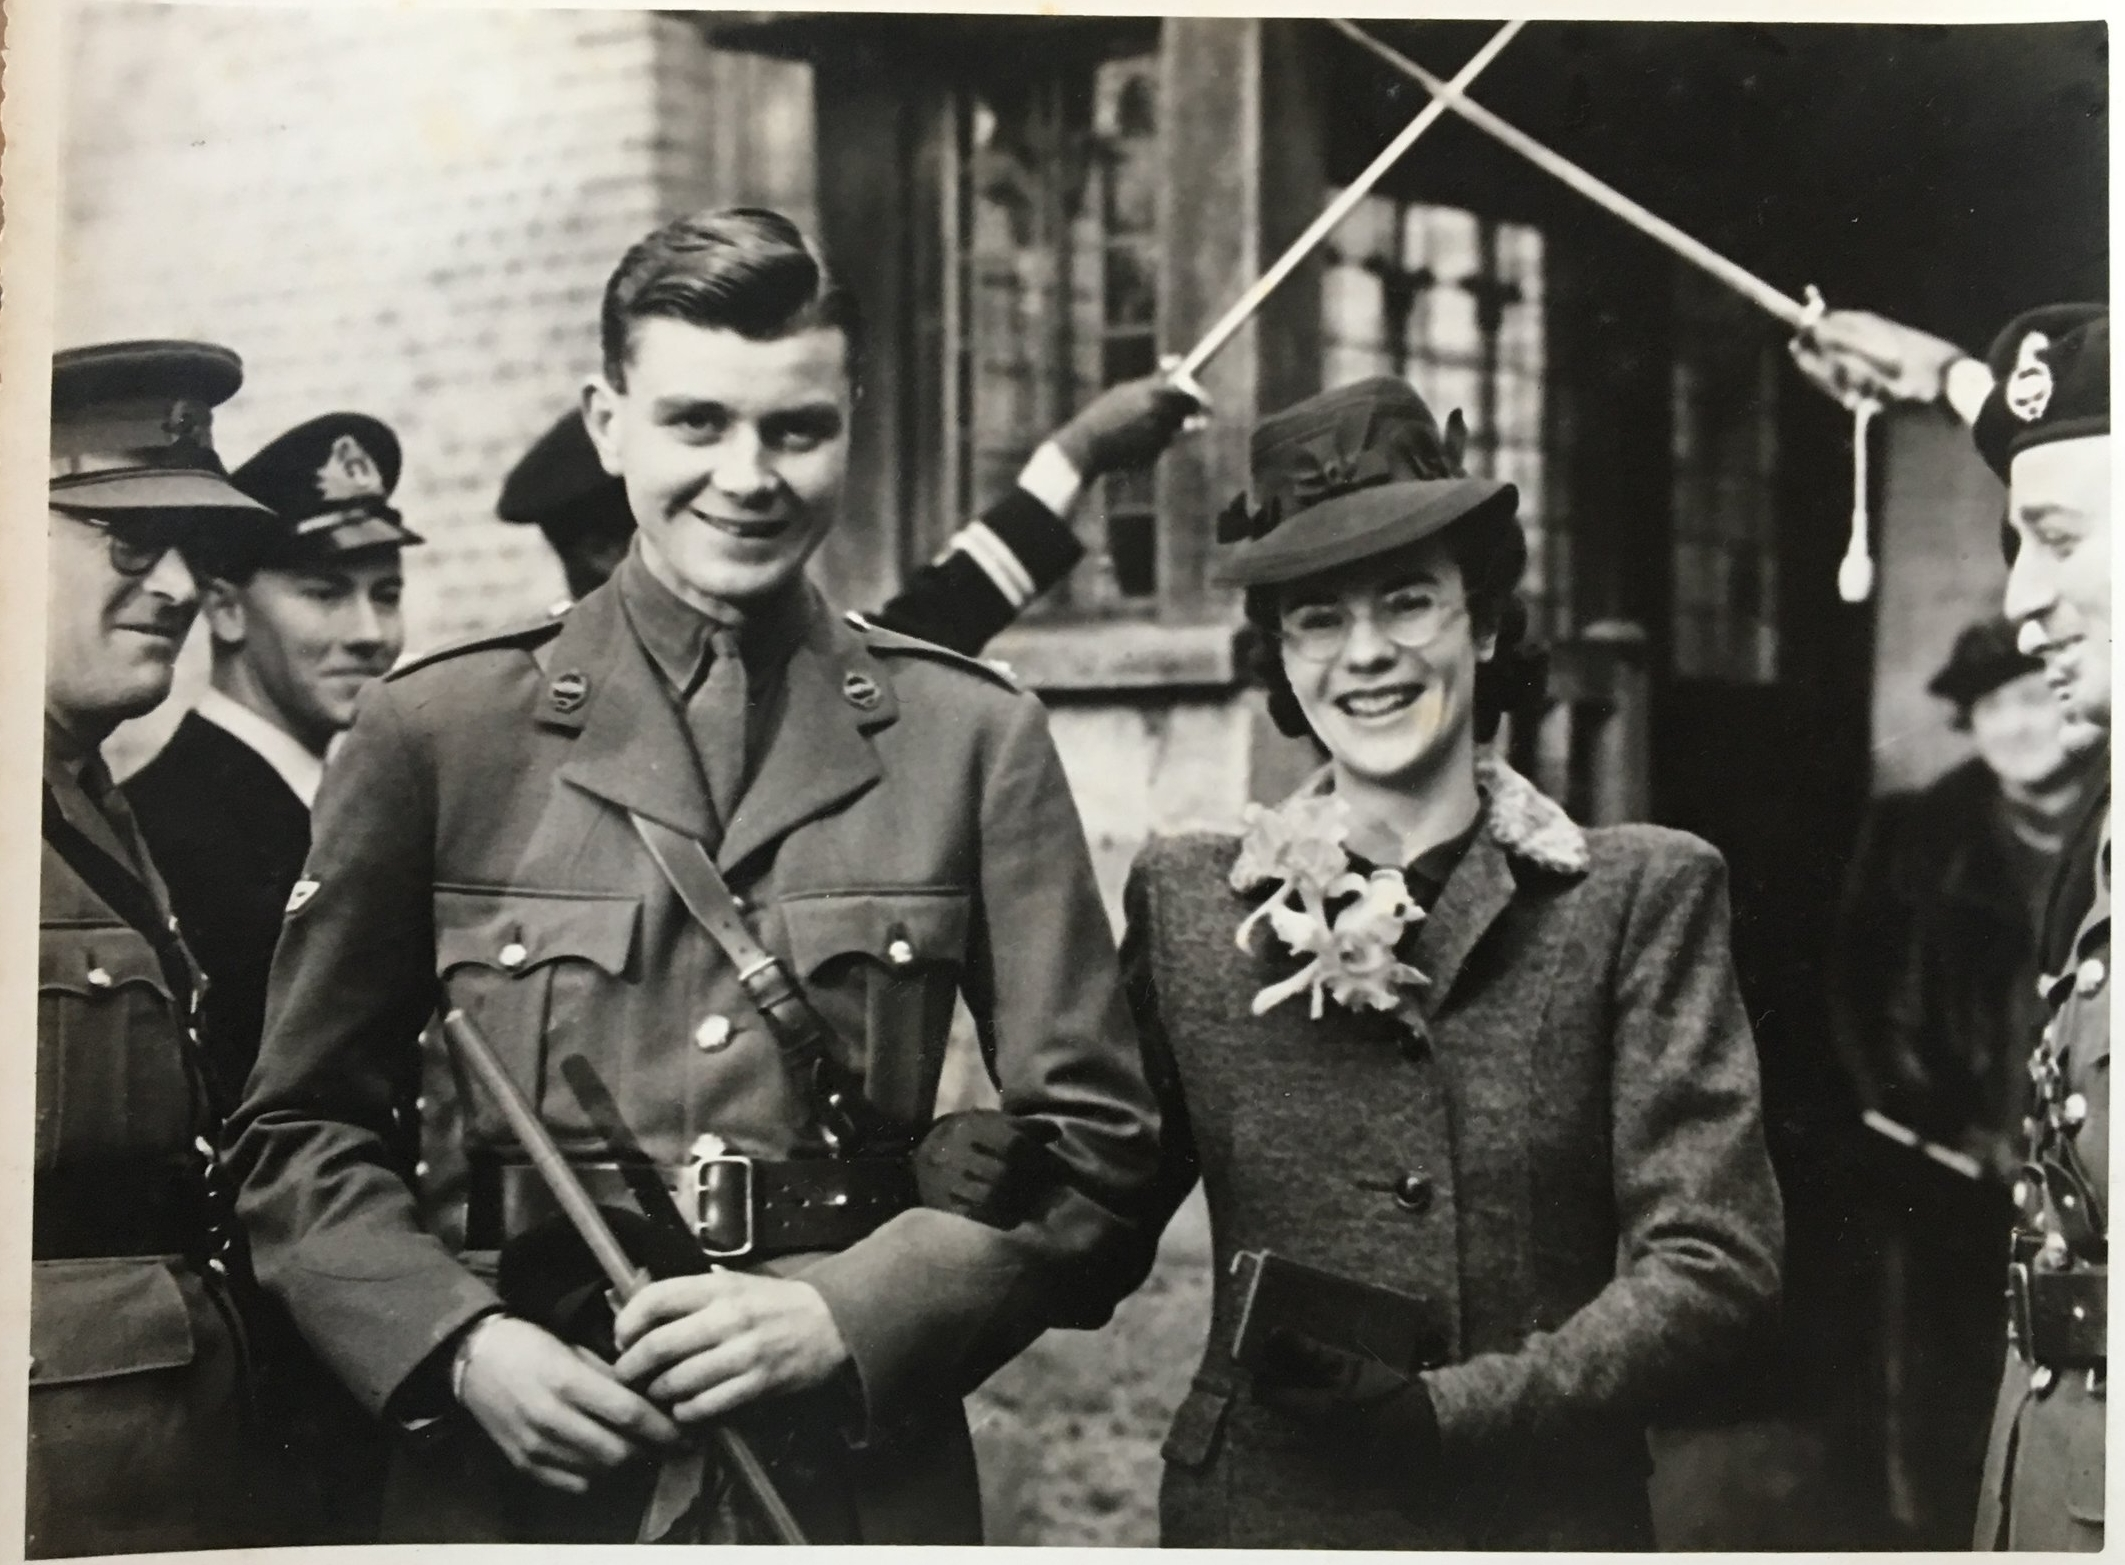 1940 - Wartime wedding - marrying Michael Franklin